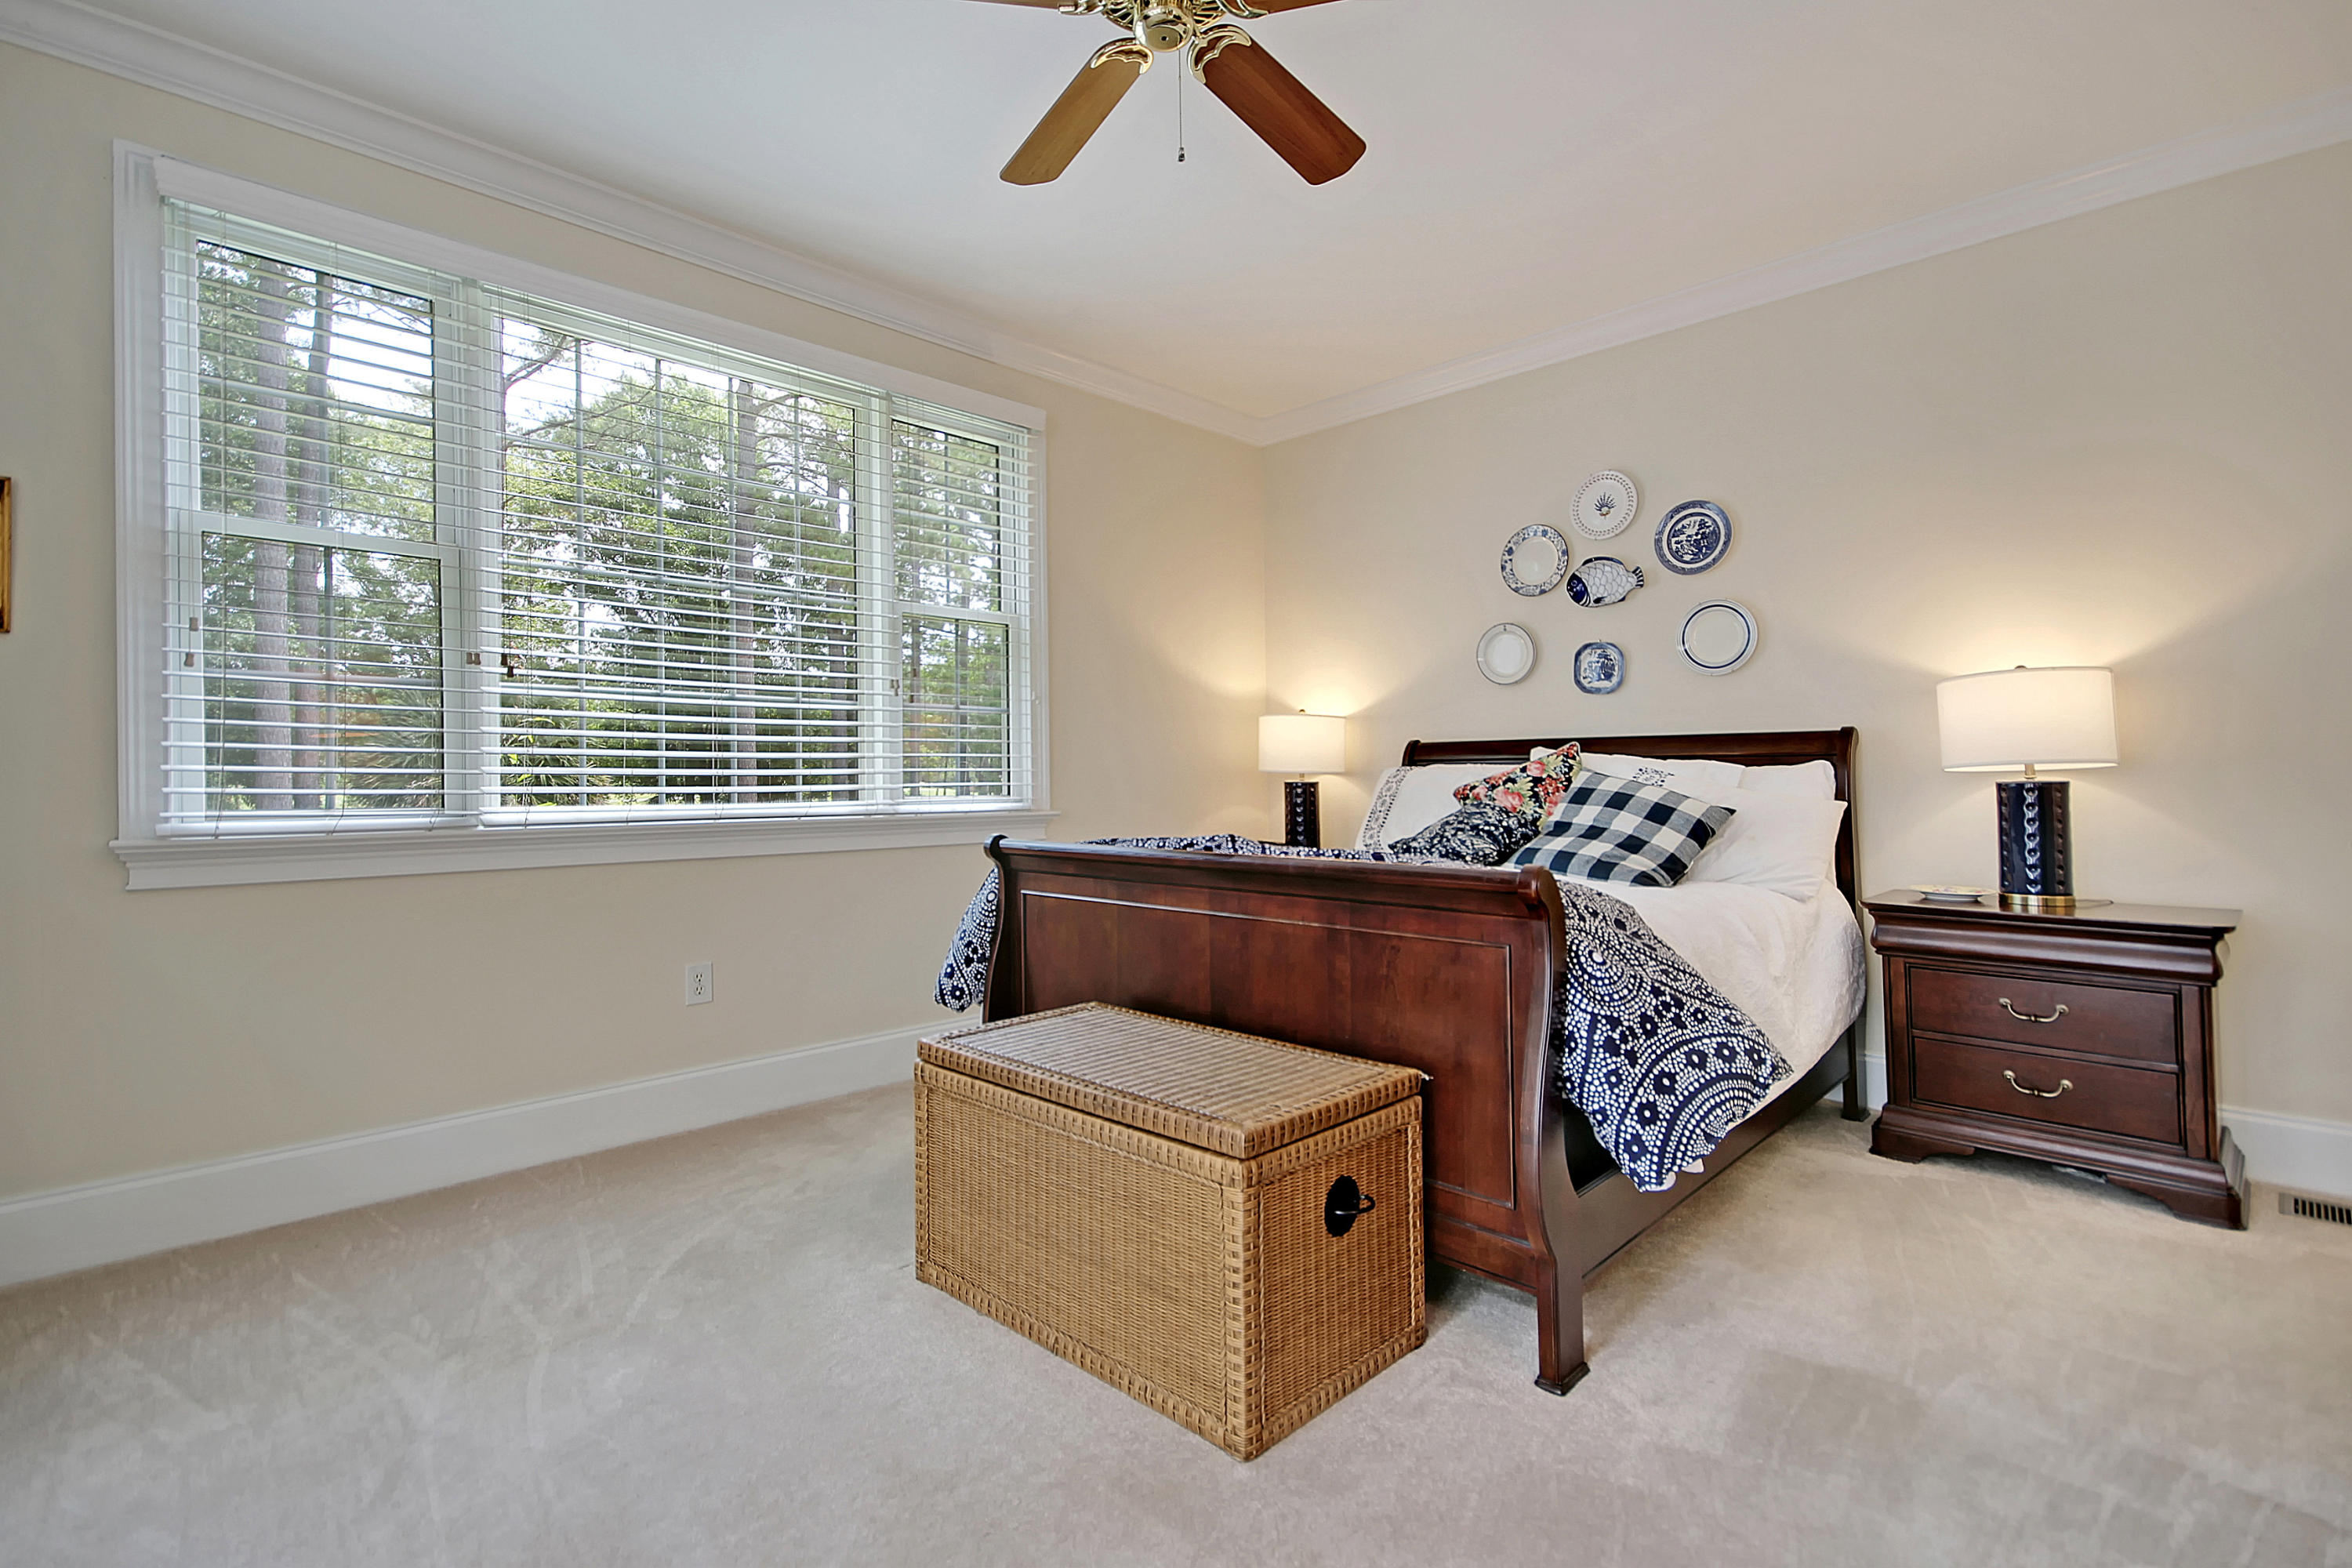 Dunes West Homes For Sale - 1829 Shell Ring, Mount Pleasant, SC - 11